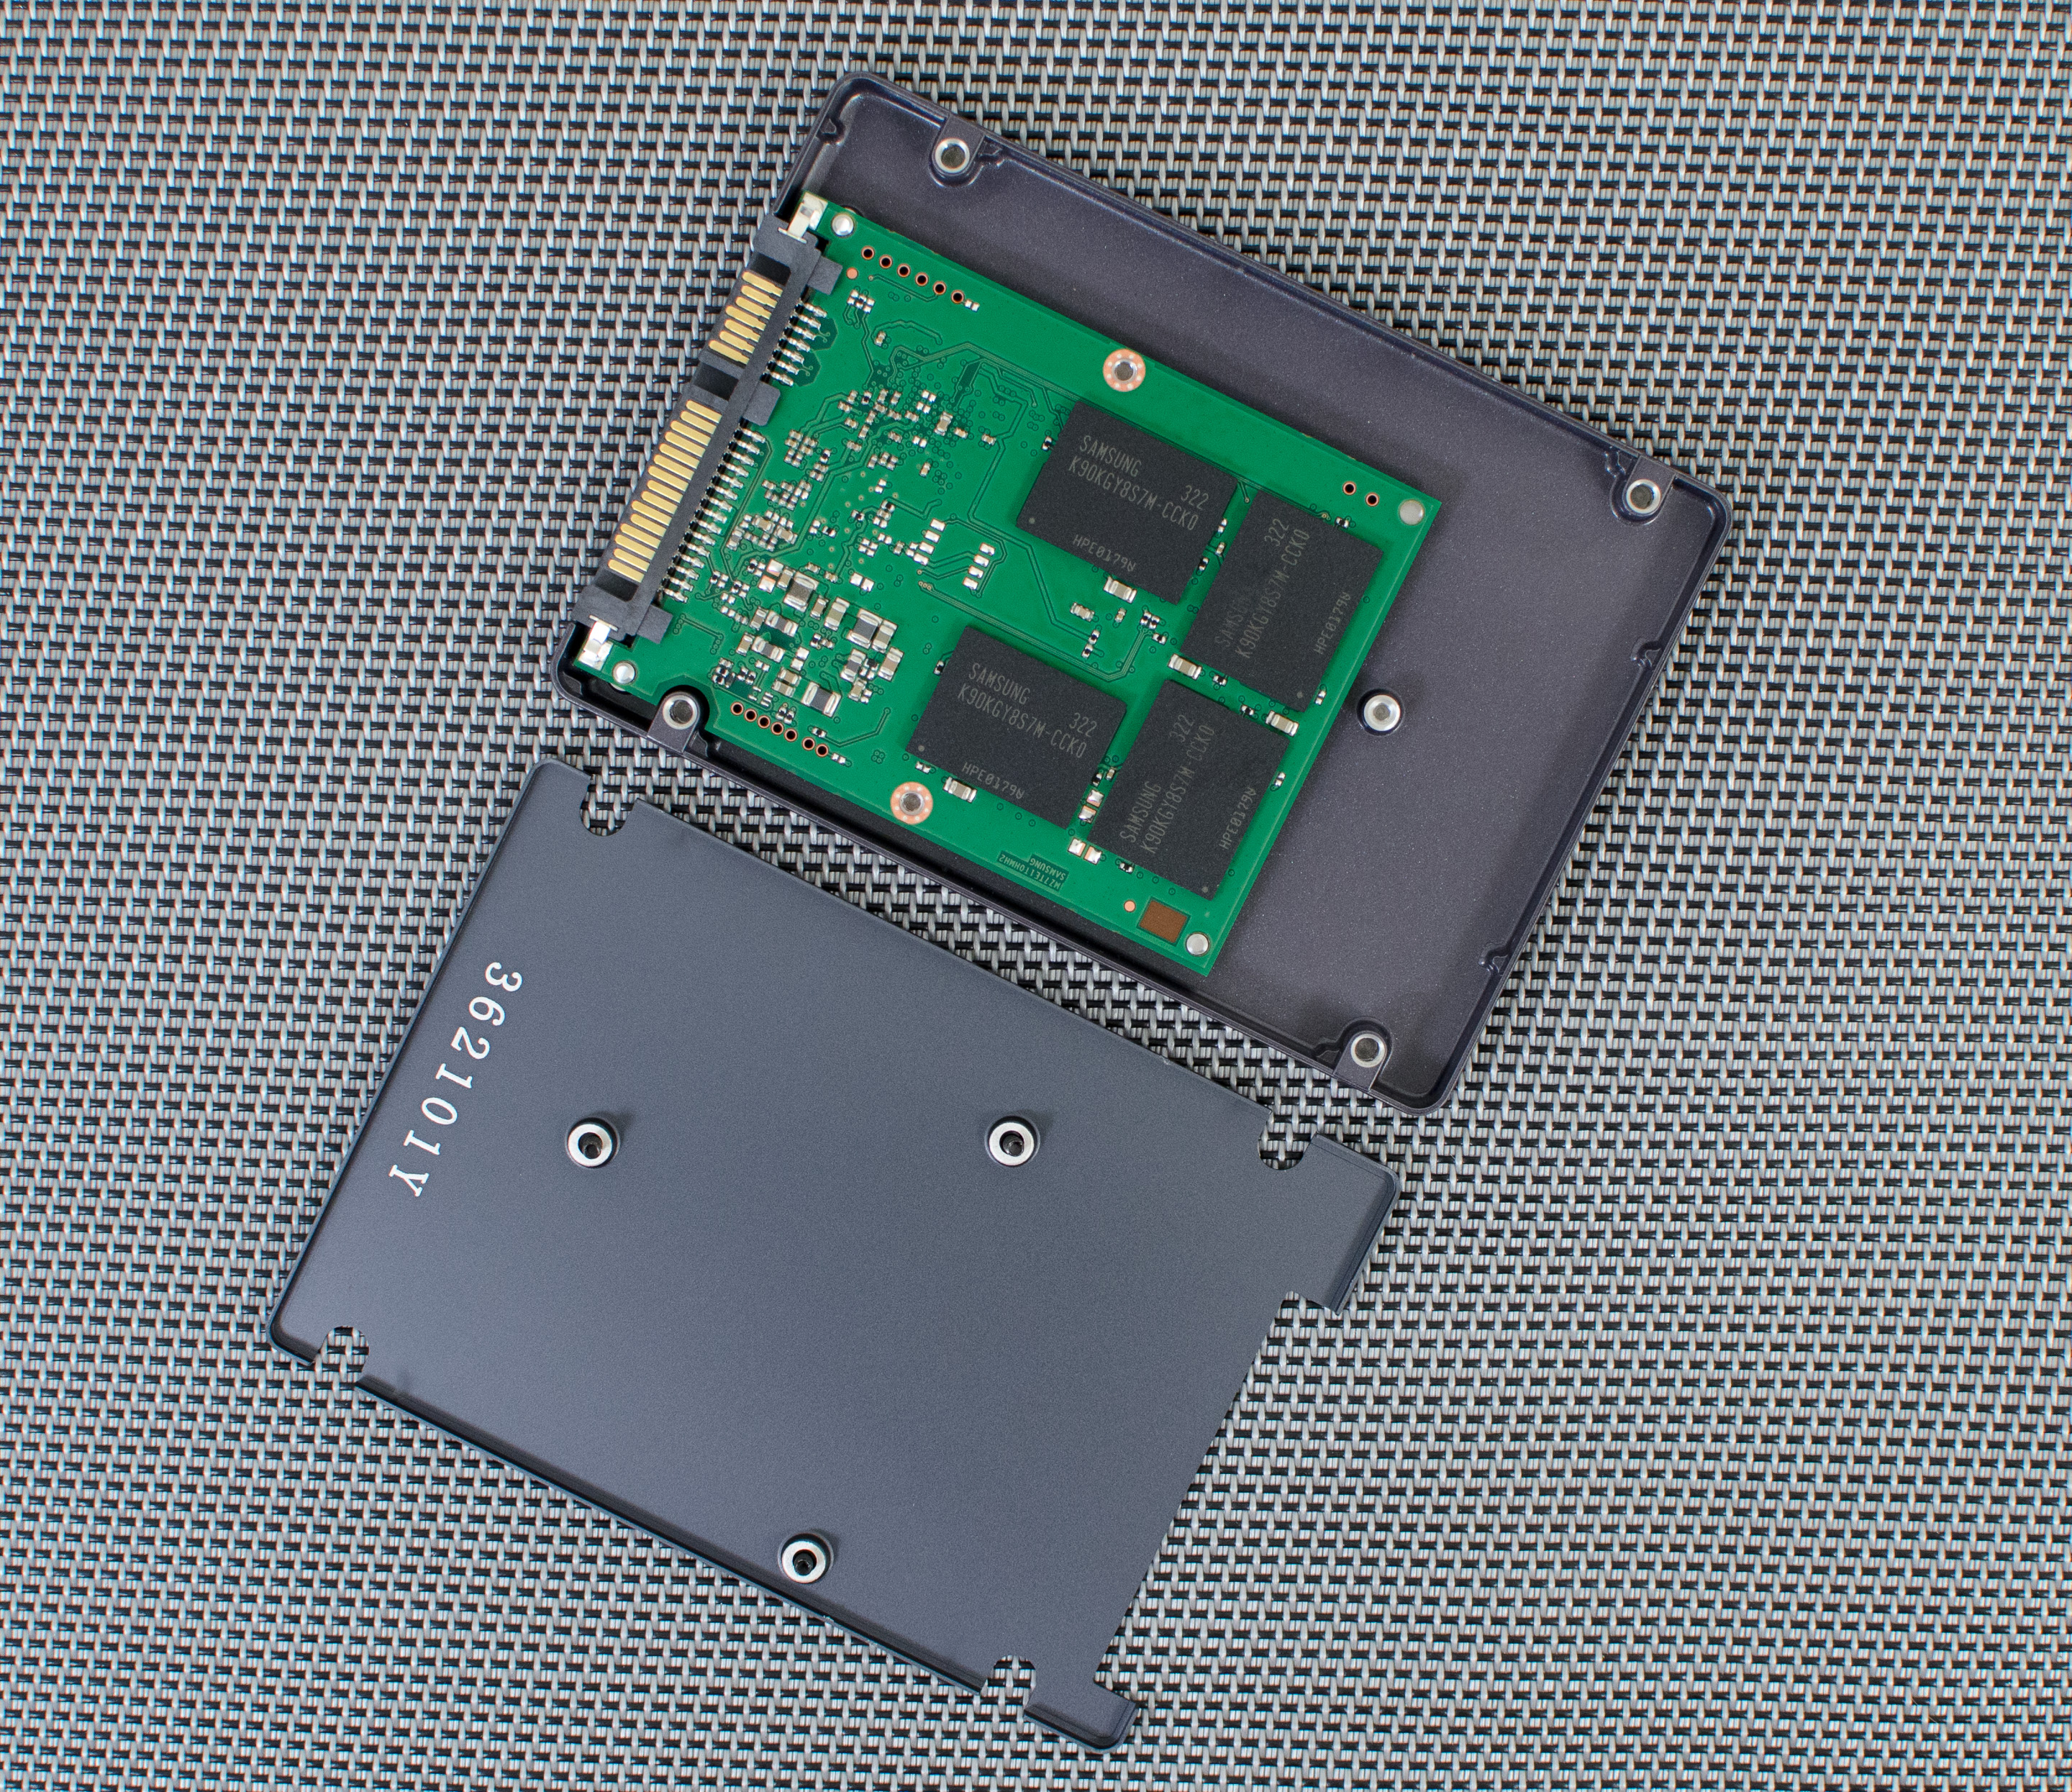 Inside the Drives & Spare Area - Samsung SSD 840 EVO Review